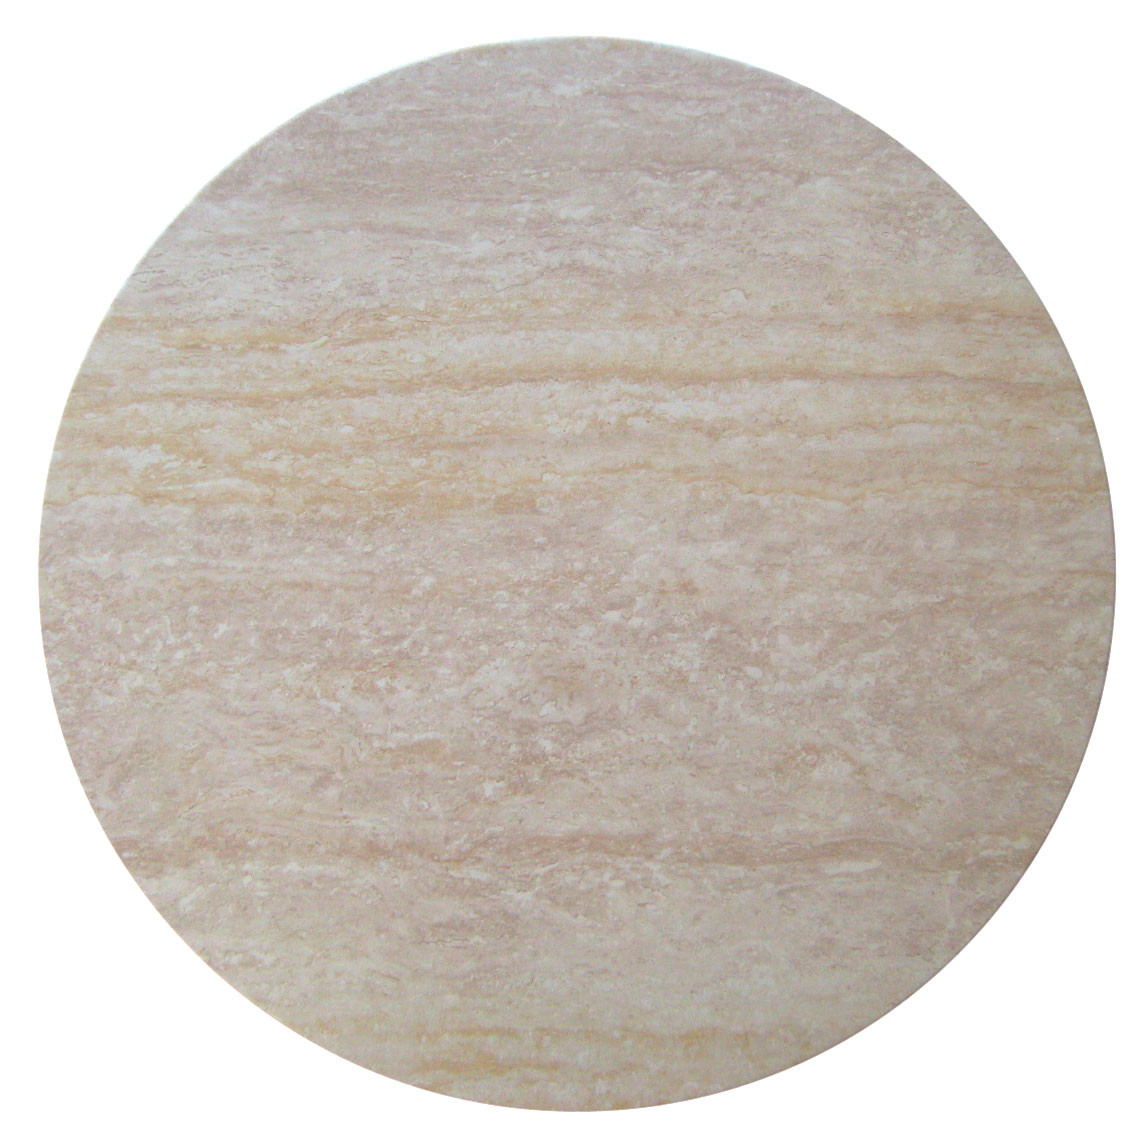 New Travertine Round Resin Table Top Ebay